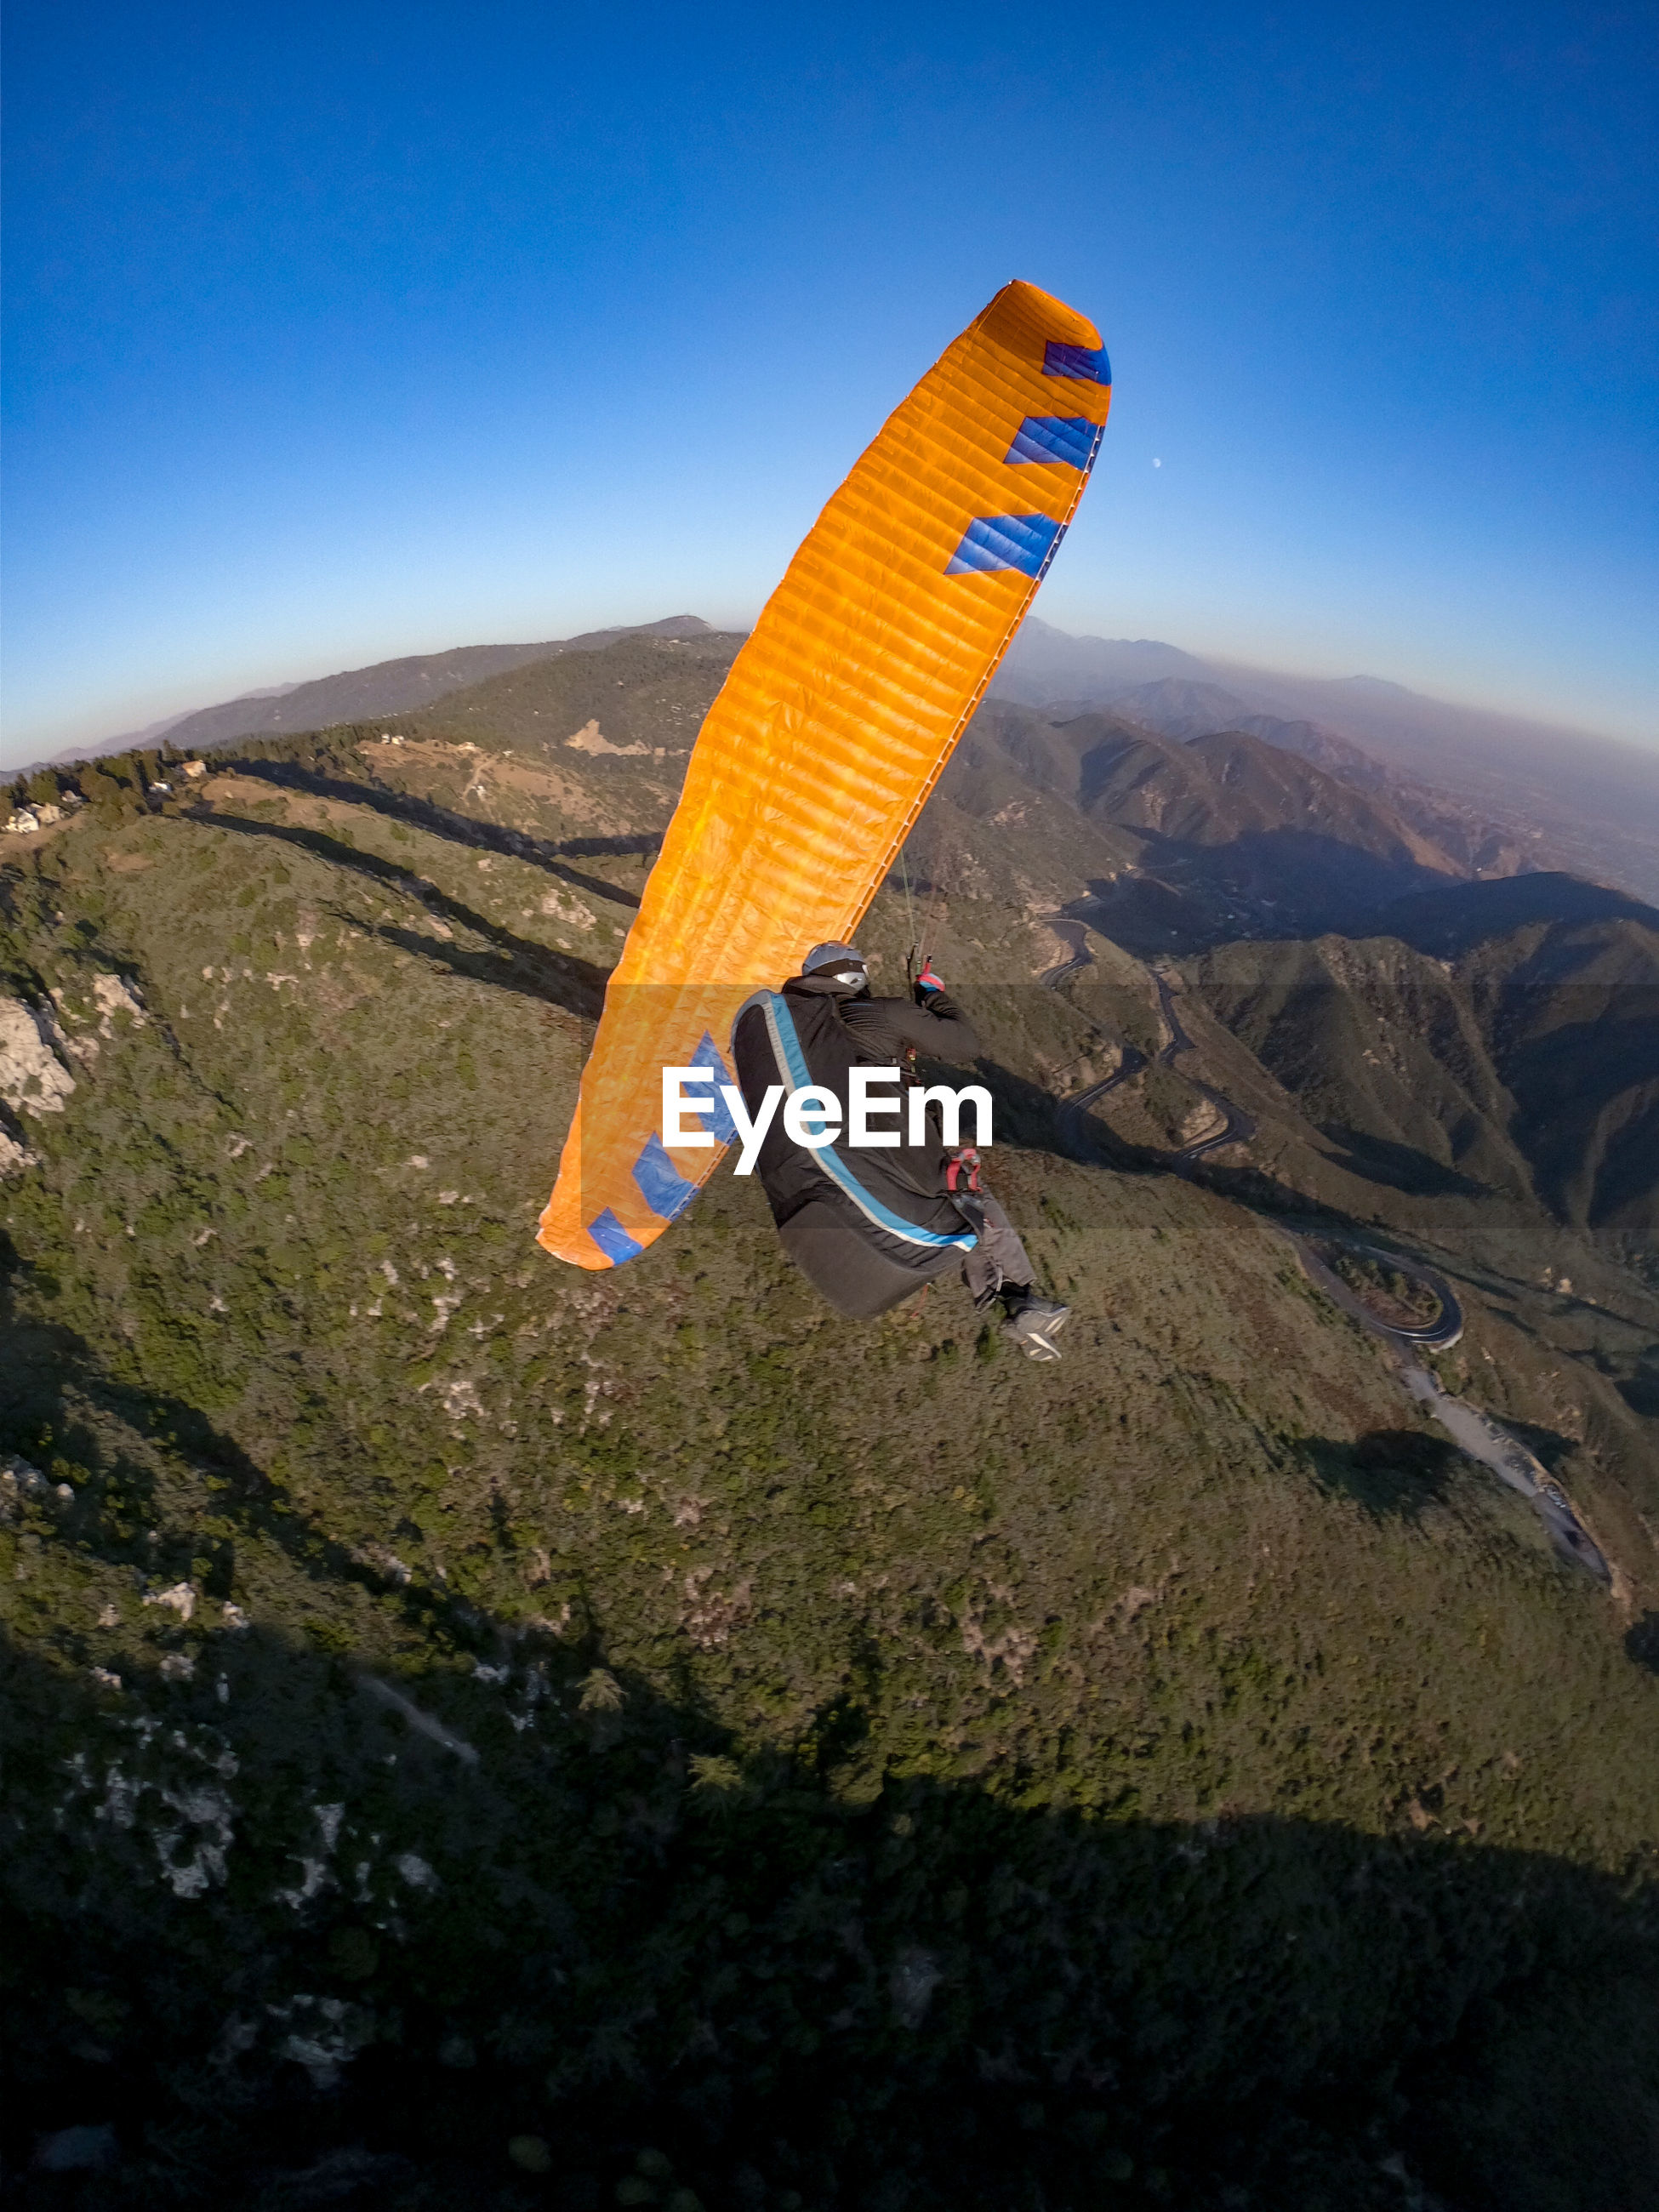 HIGH ANGLE VIEW OF KITE FLYING OVER MOUNTAIN